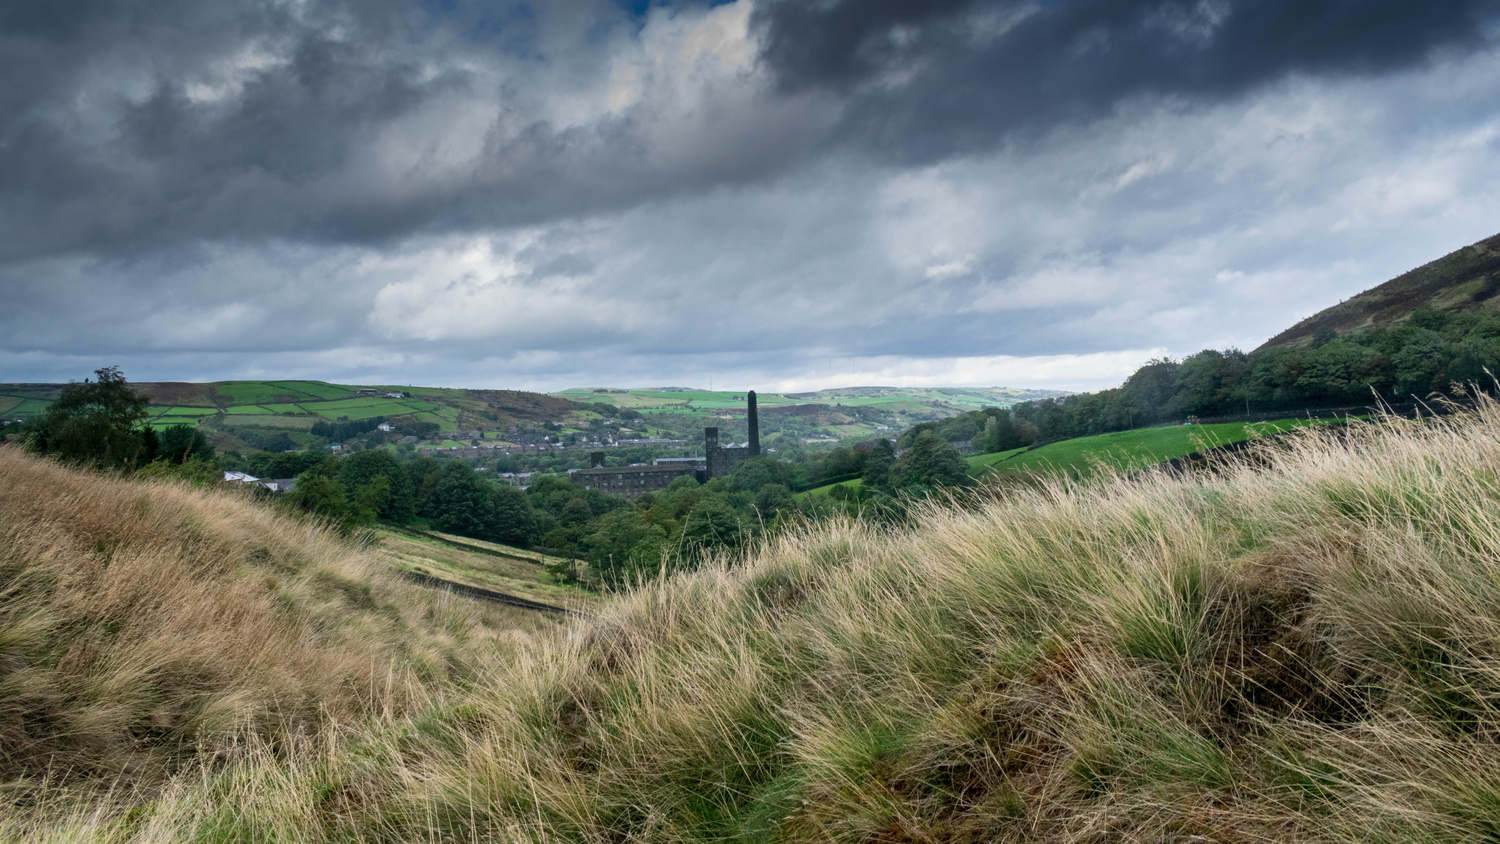 Gloom on the Moors by Steven Clough